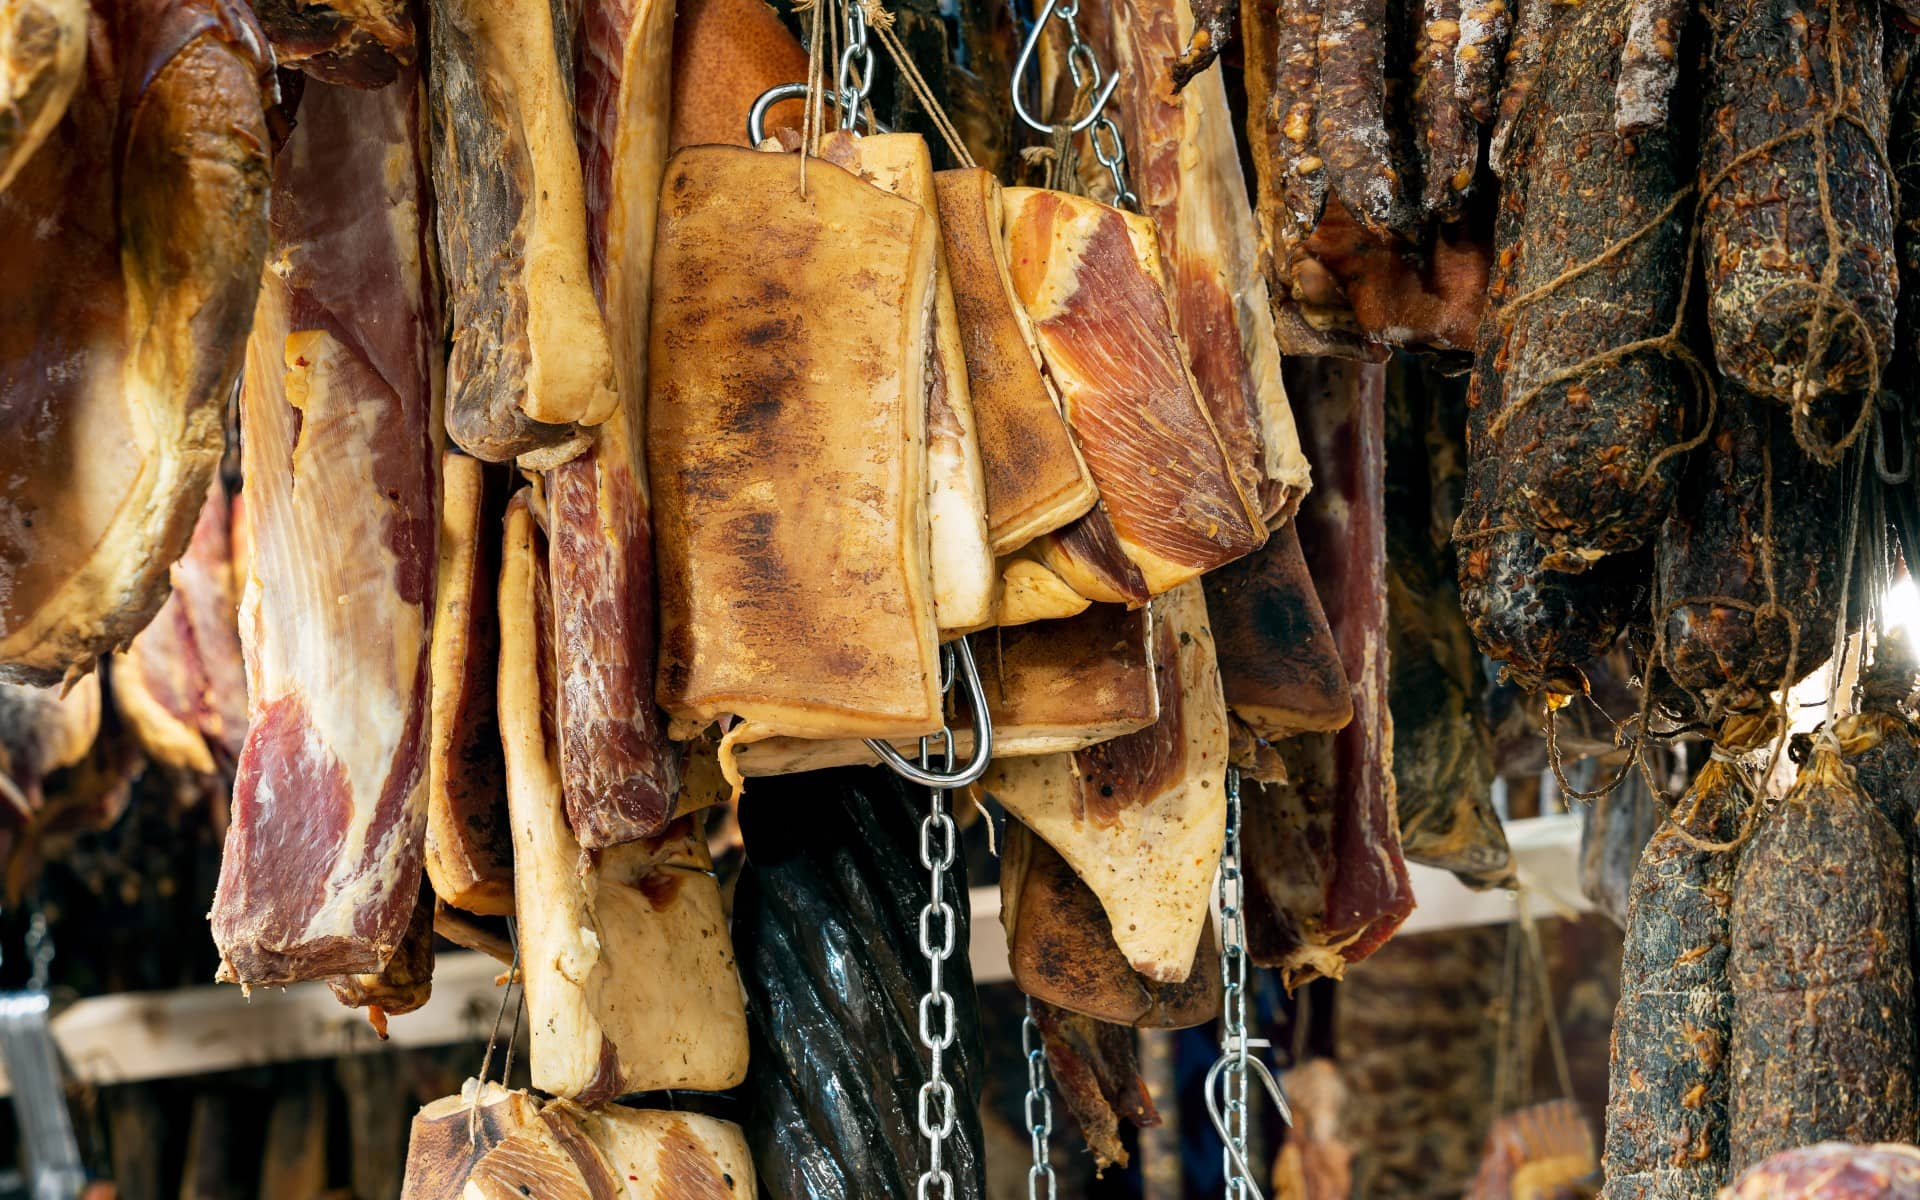 Smoked meats hanging from hooks.